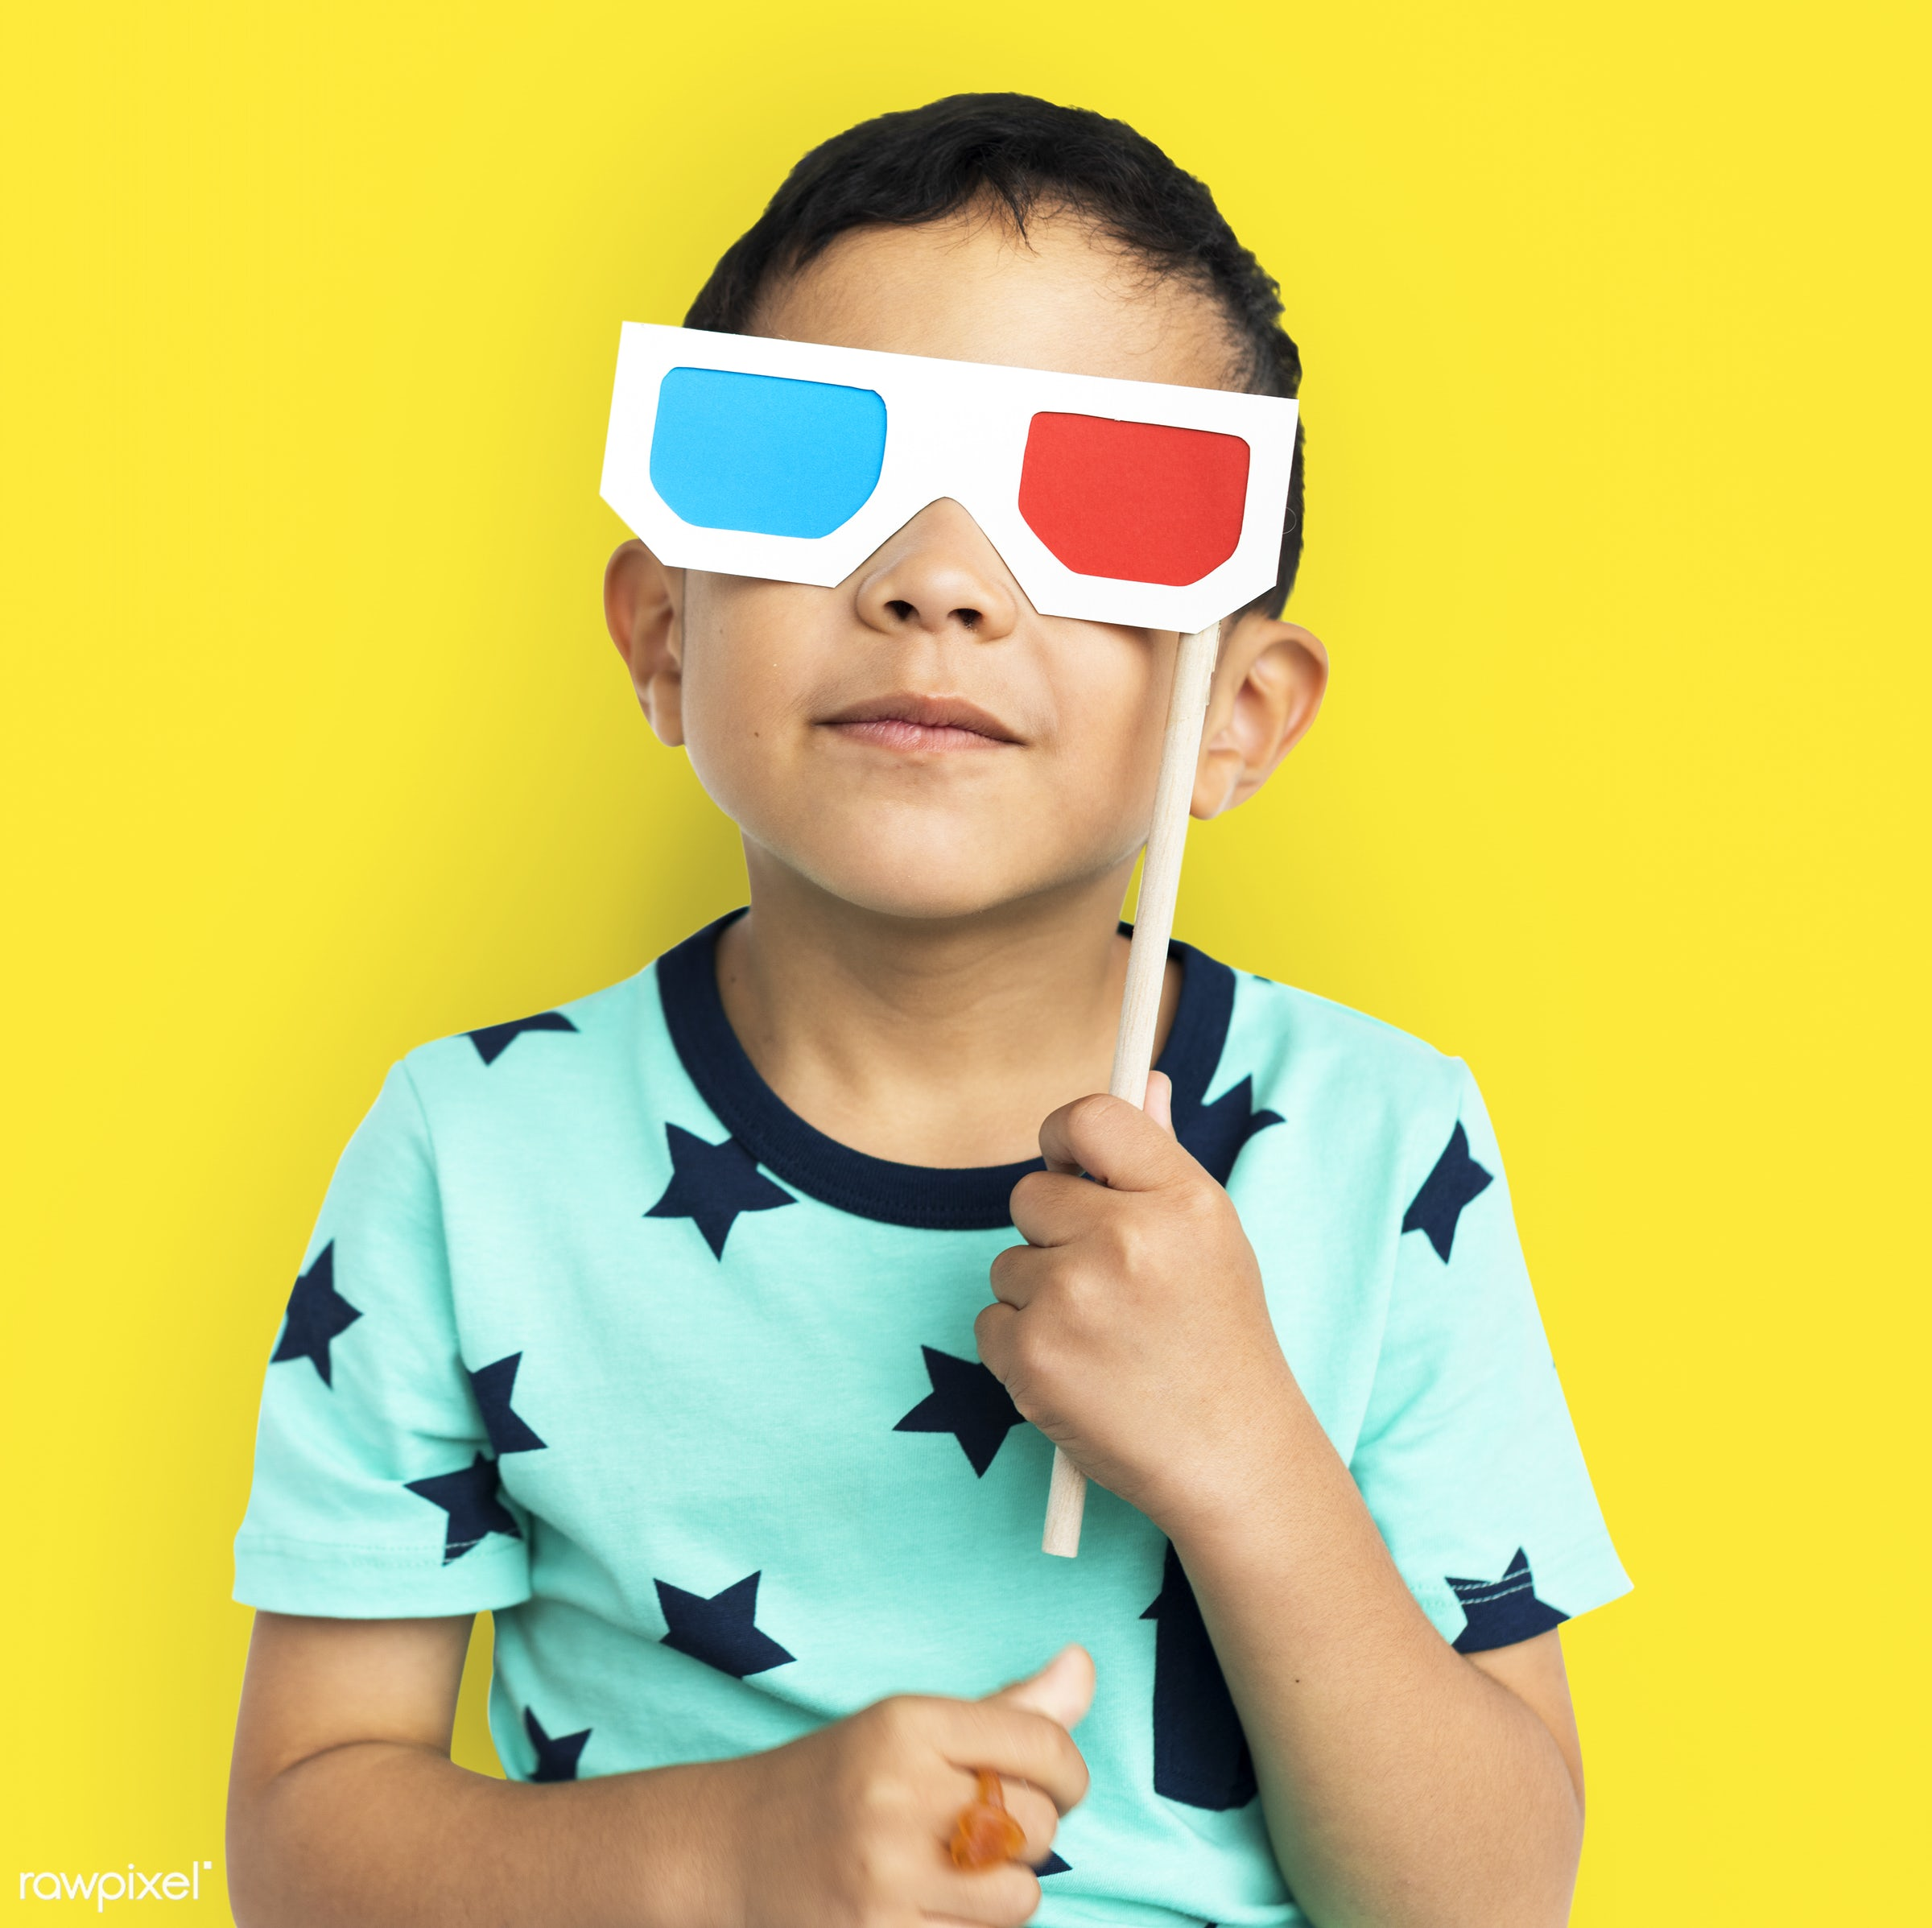 Young kids studio shoot - boy, child, expression, fun, isolated, kid, playful, studio, young, youth, props, eyeglasses,...